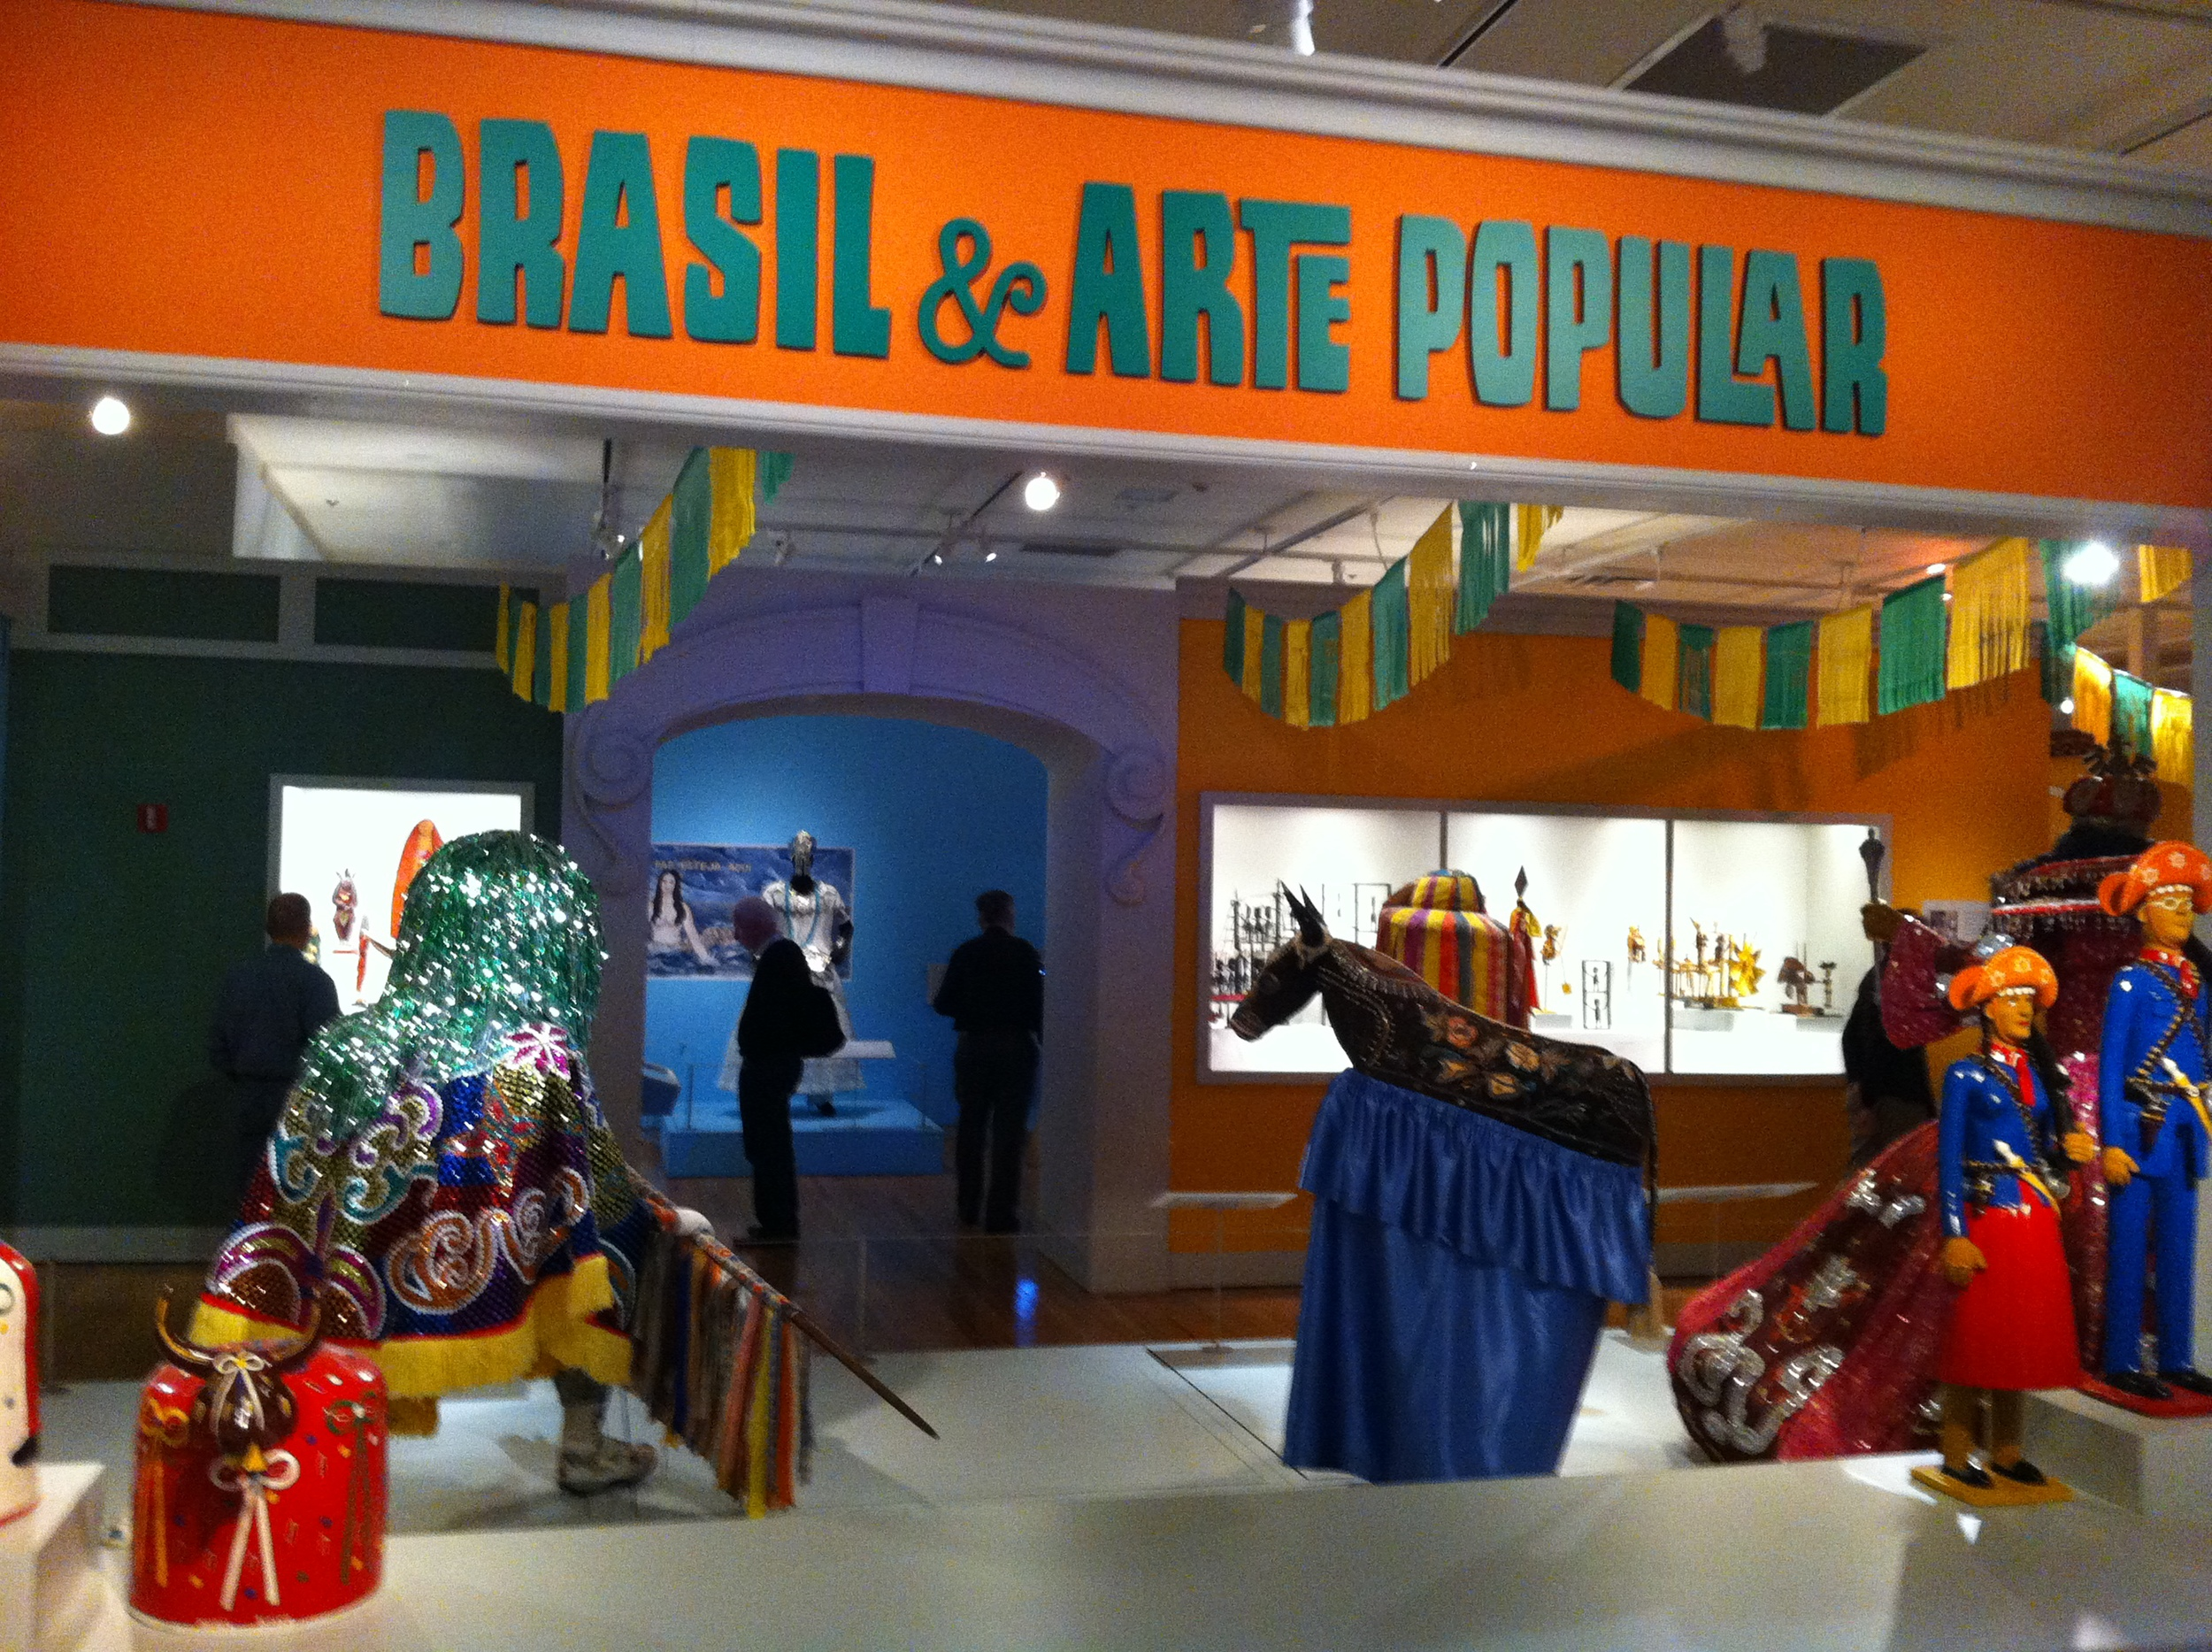 Life size folk art from Brasil.